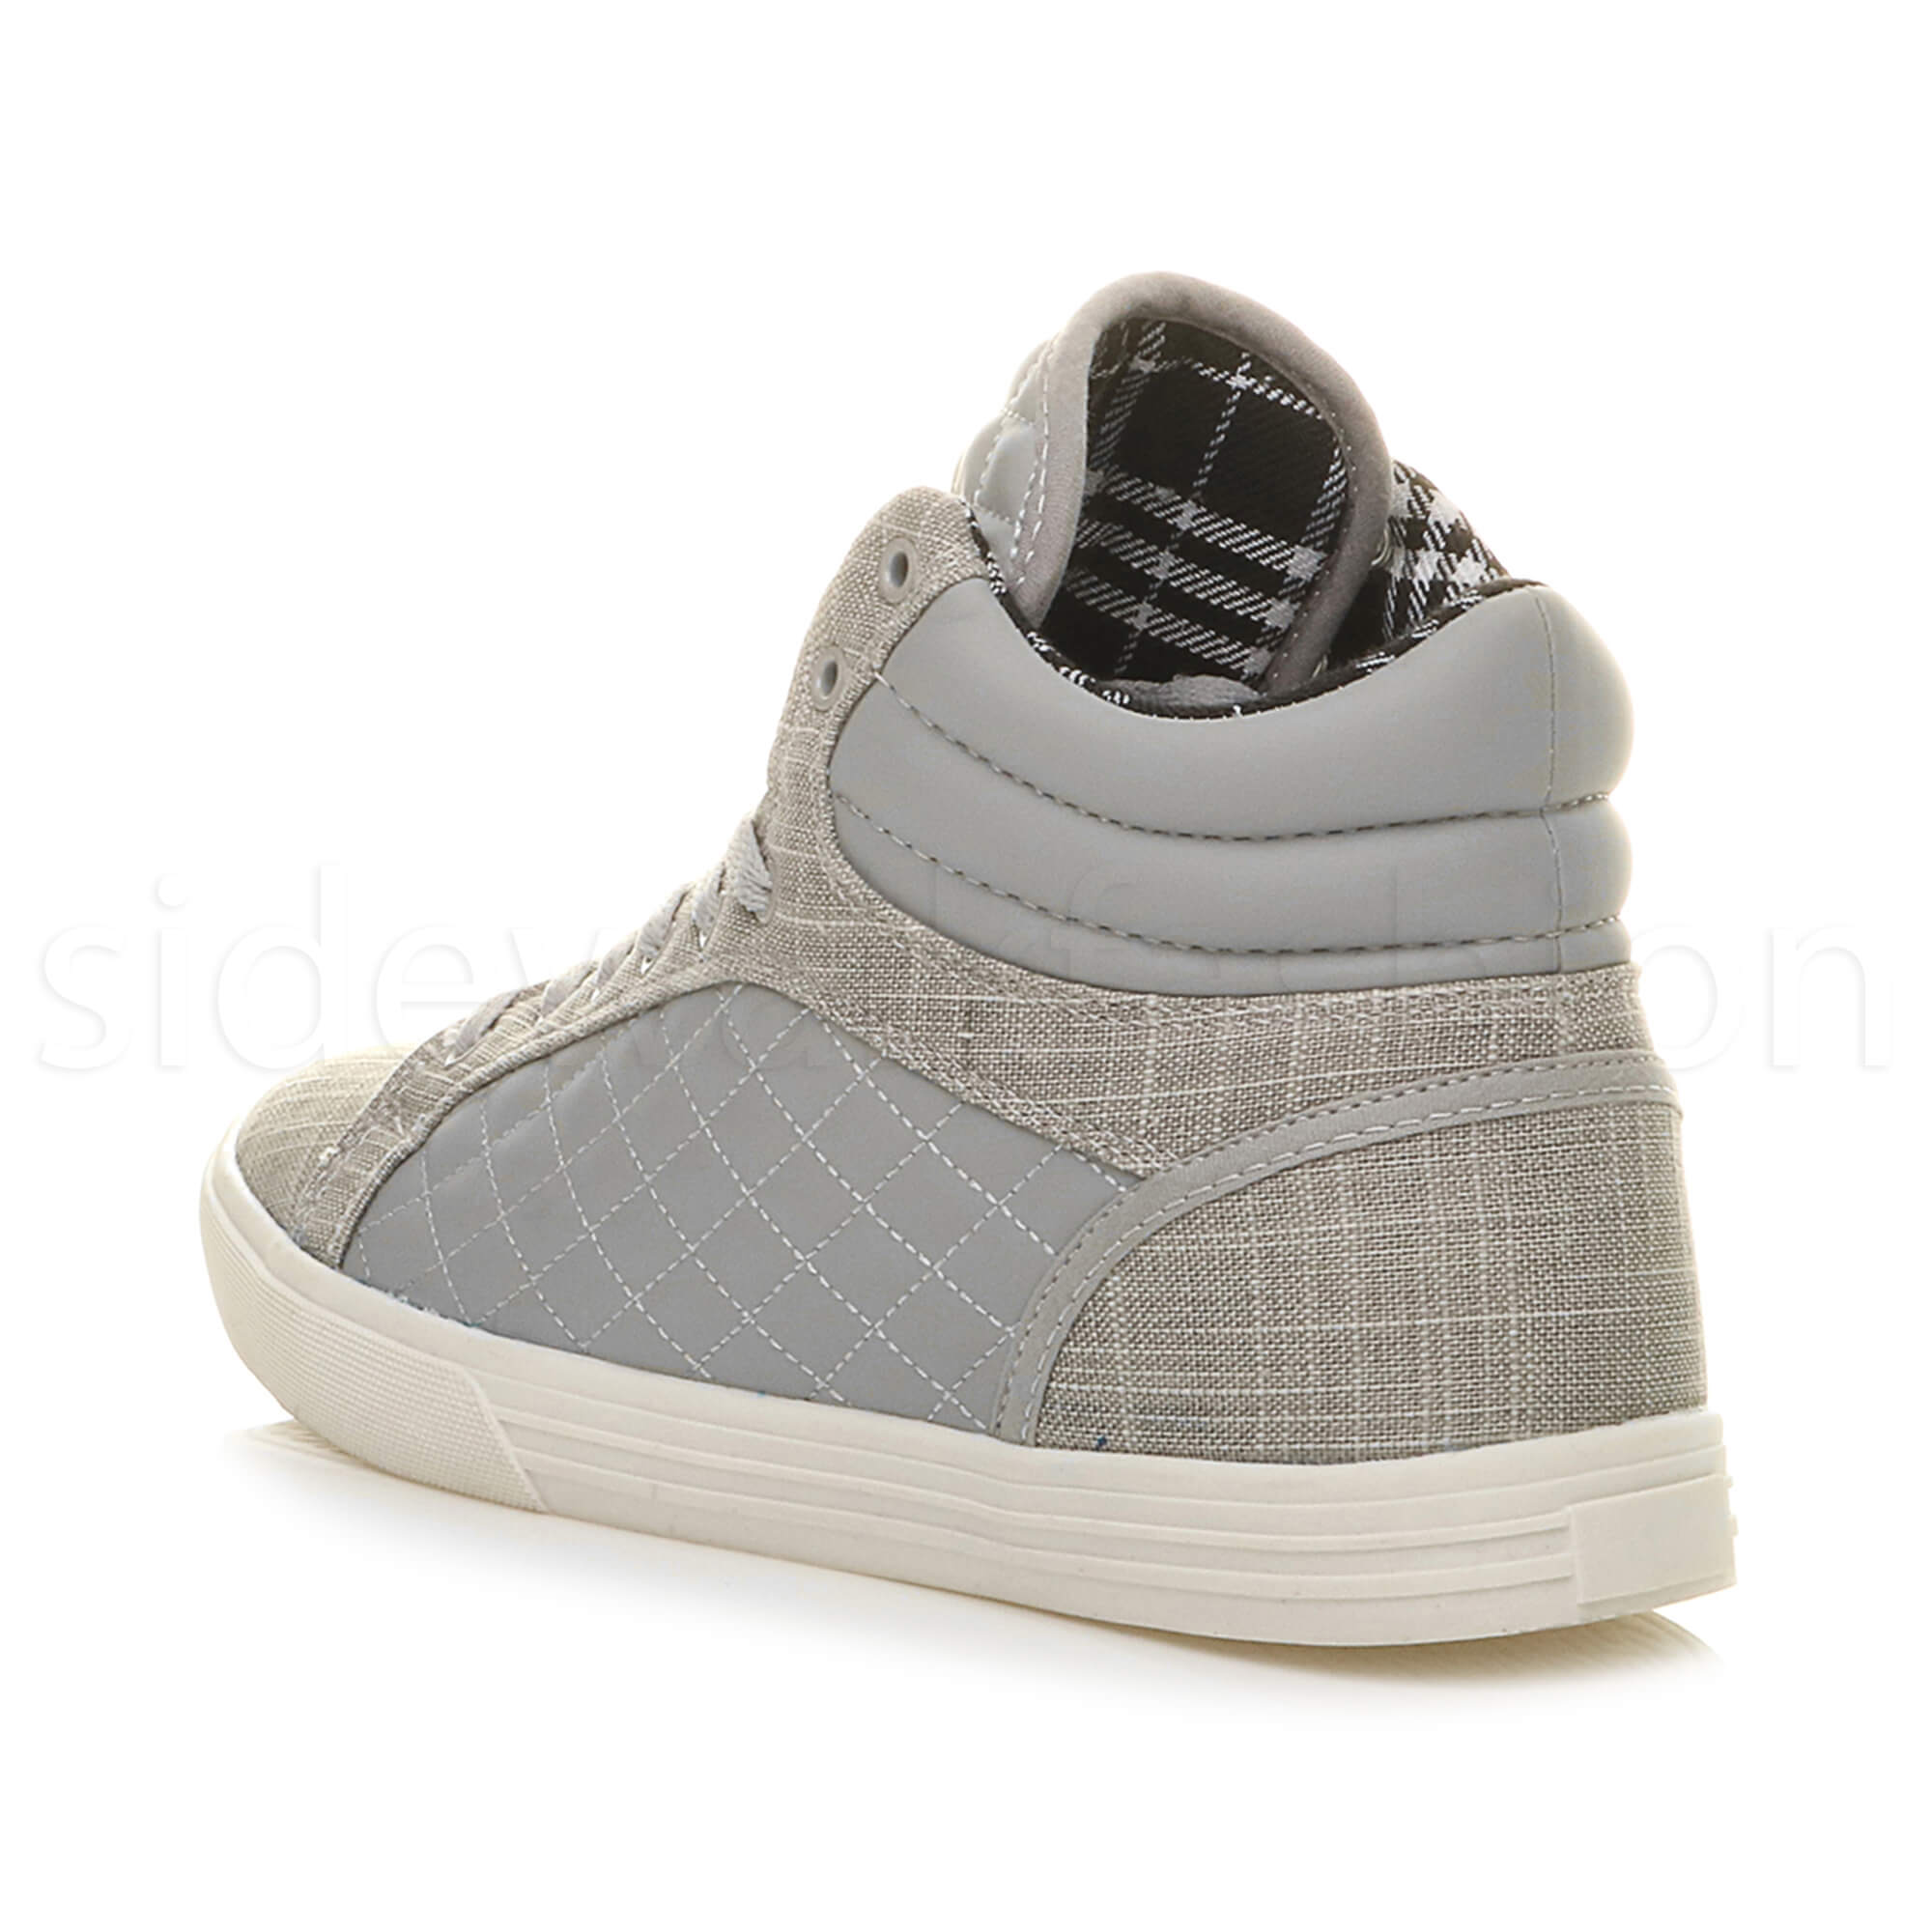 Mens-flat-lace-up-quilted-casual-hi-high-top-ankle-boots-trainers-sneakers-size thumbnail 19